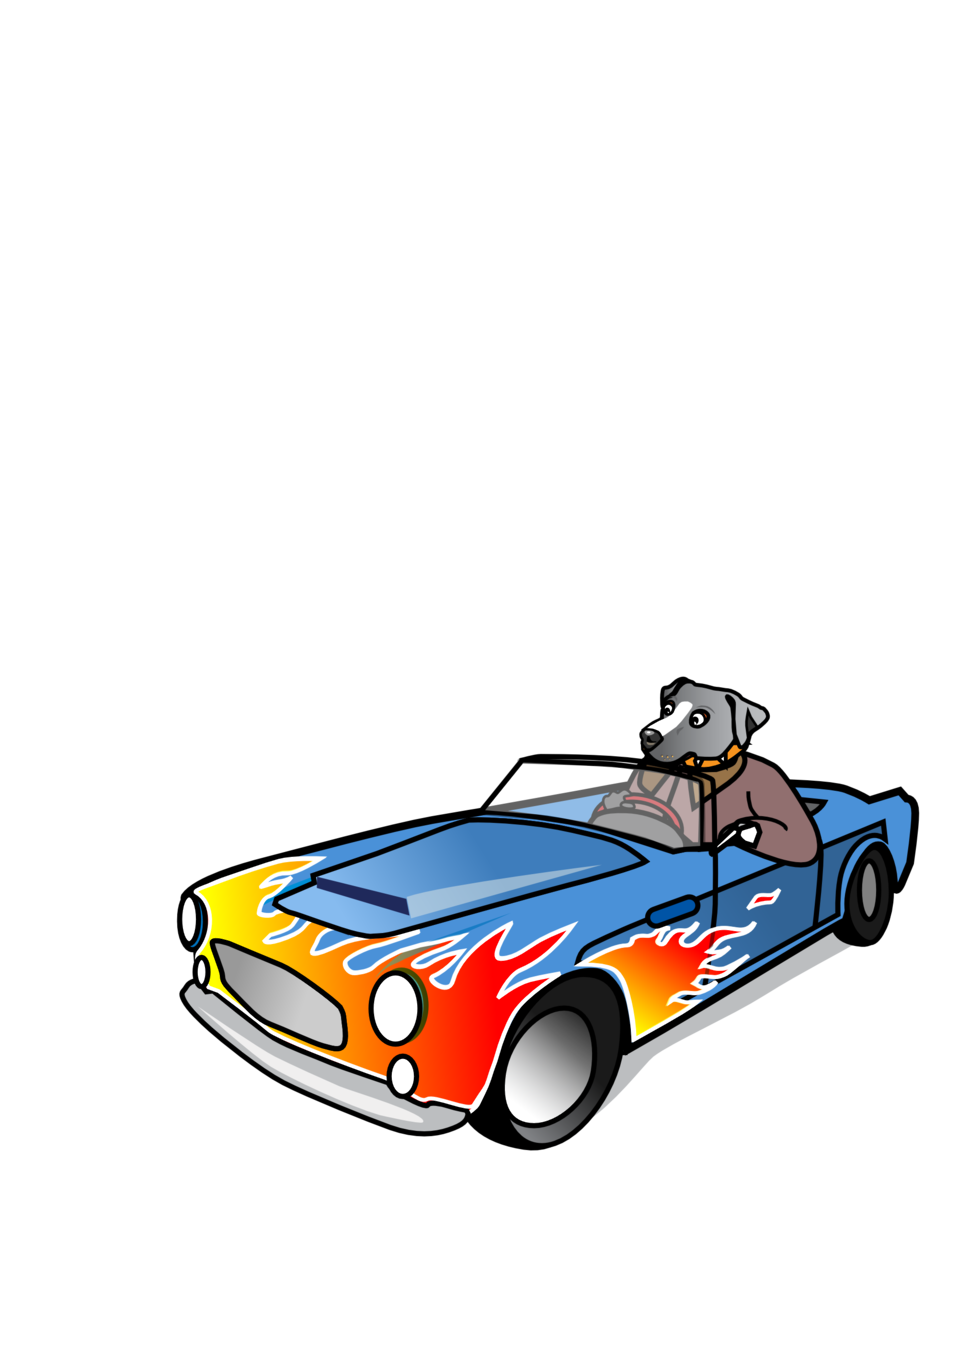 Dog driving car clipart image free Public Domain Clip Art Image | Dog in Sports Car | ID ... image free